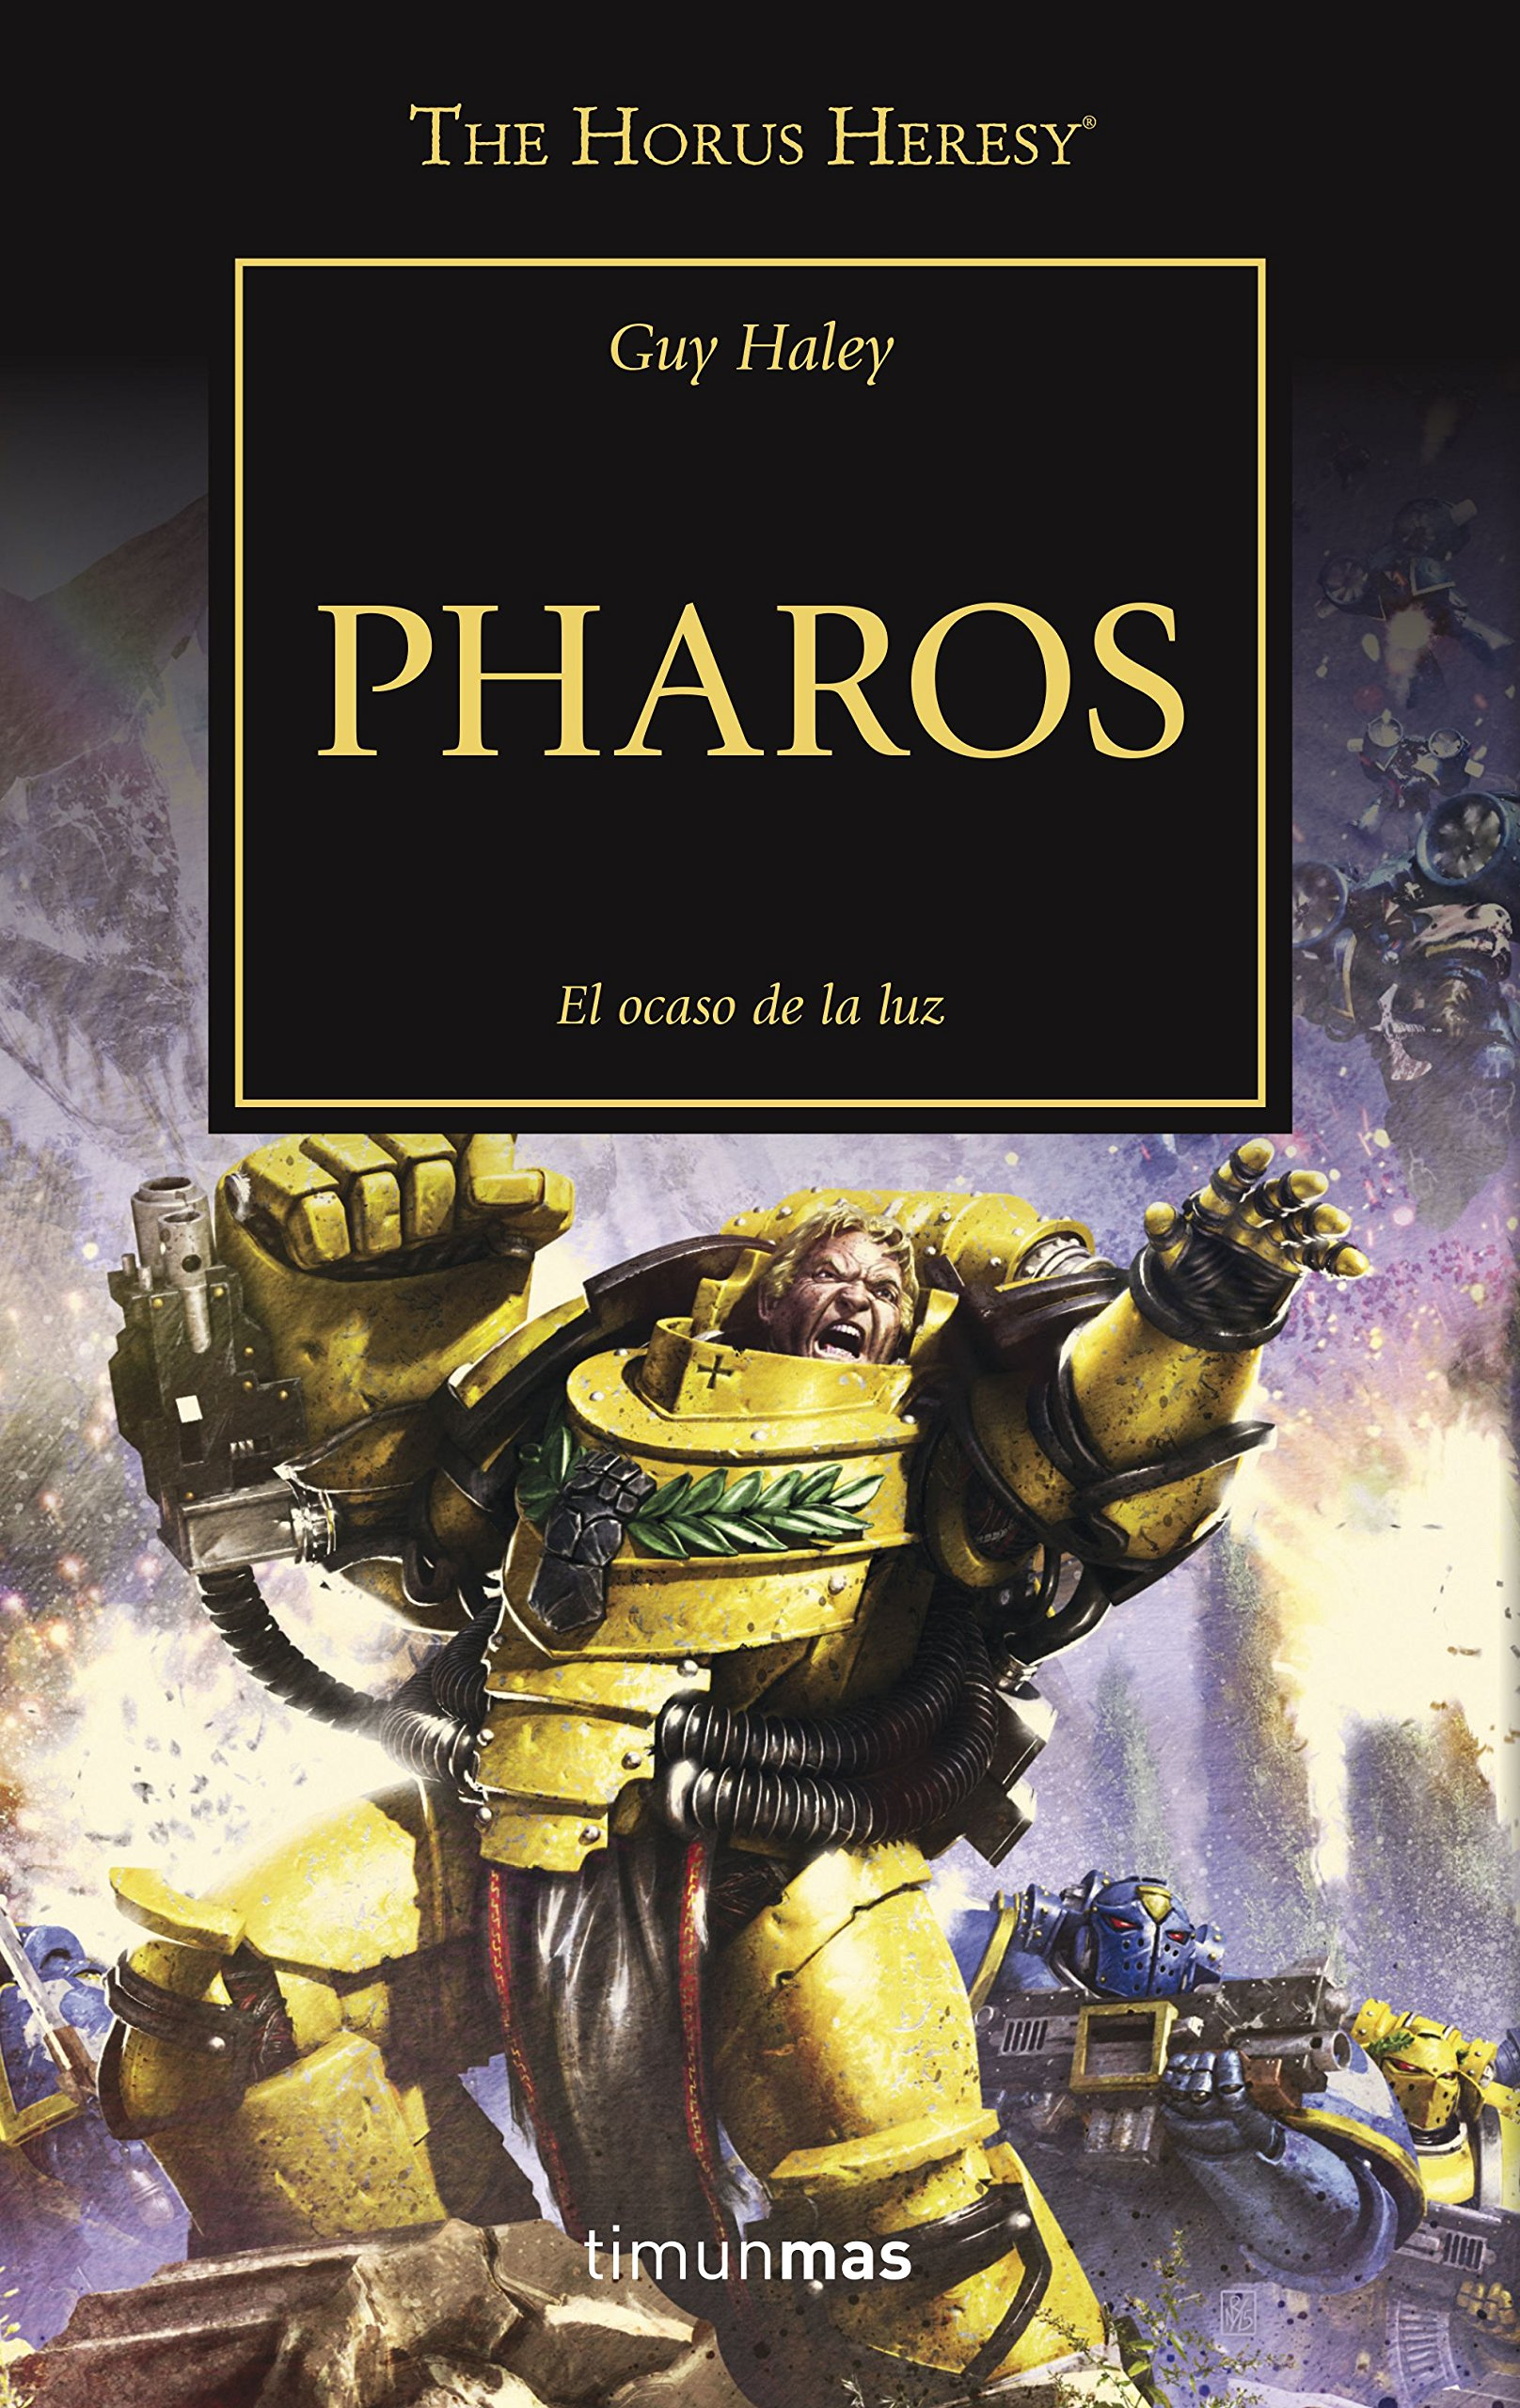 Pharos nº 34: El ocaso de la luz (The Horus Heresy) Tapa blanda – 16 oct 2018 Guy Haley Minotauro 8445005642 Science fiction